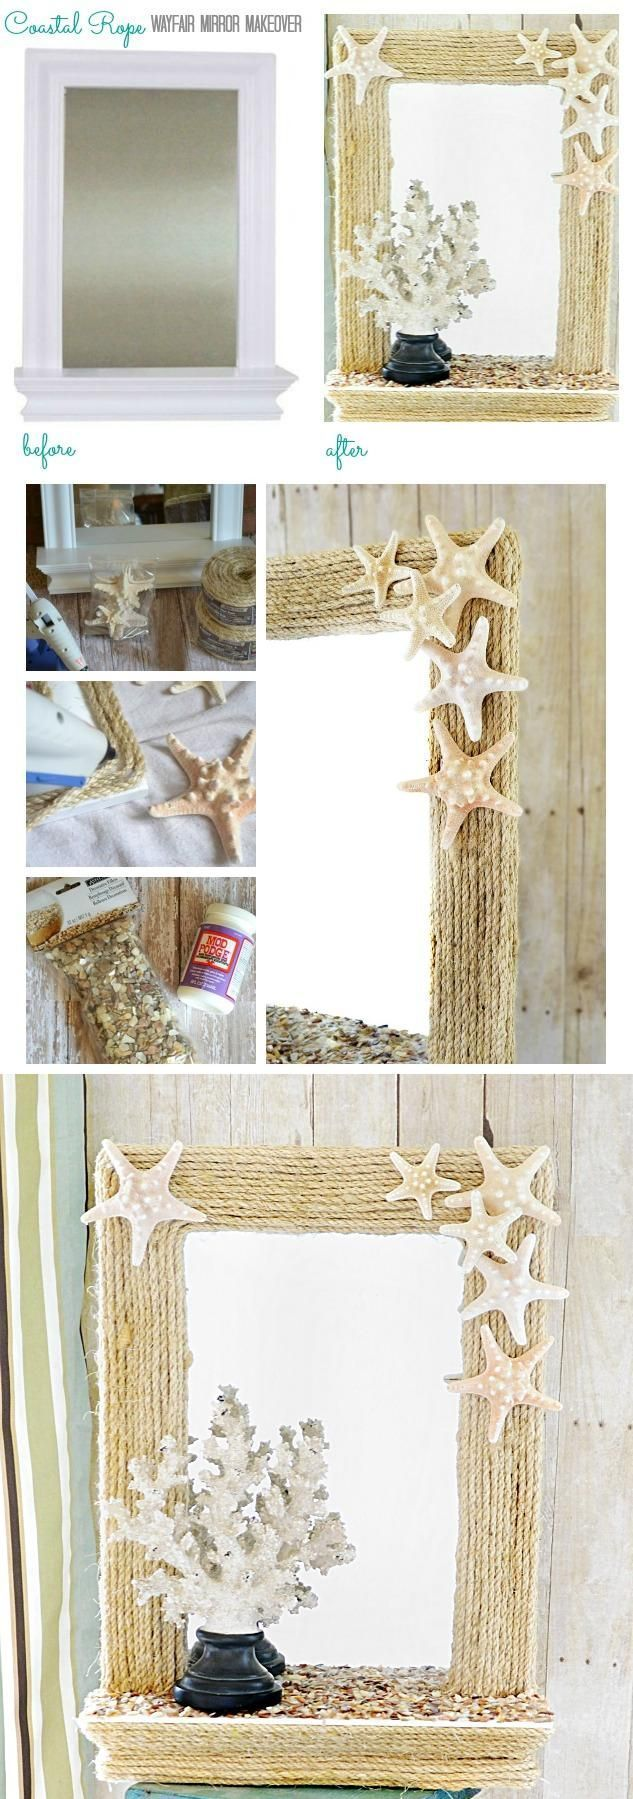 Find and save ideas about bathroom mirror with frames on Nouvelleviehaiti.org | See more ideas about DIY Bathroom mirror